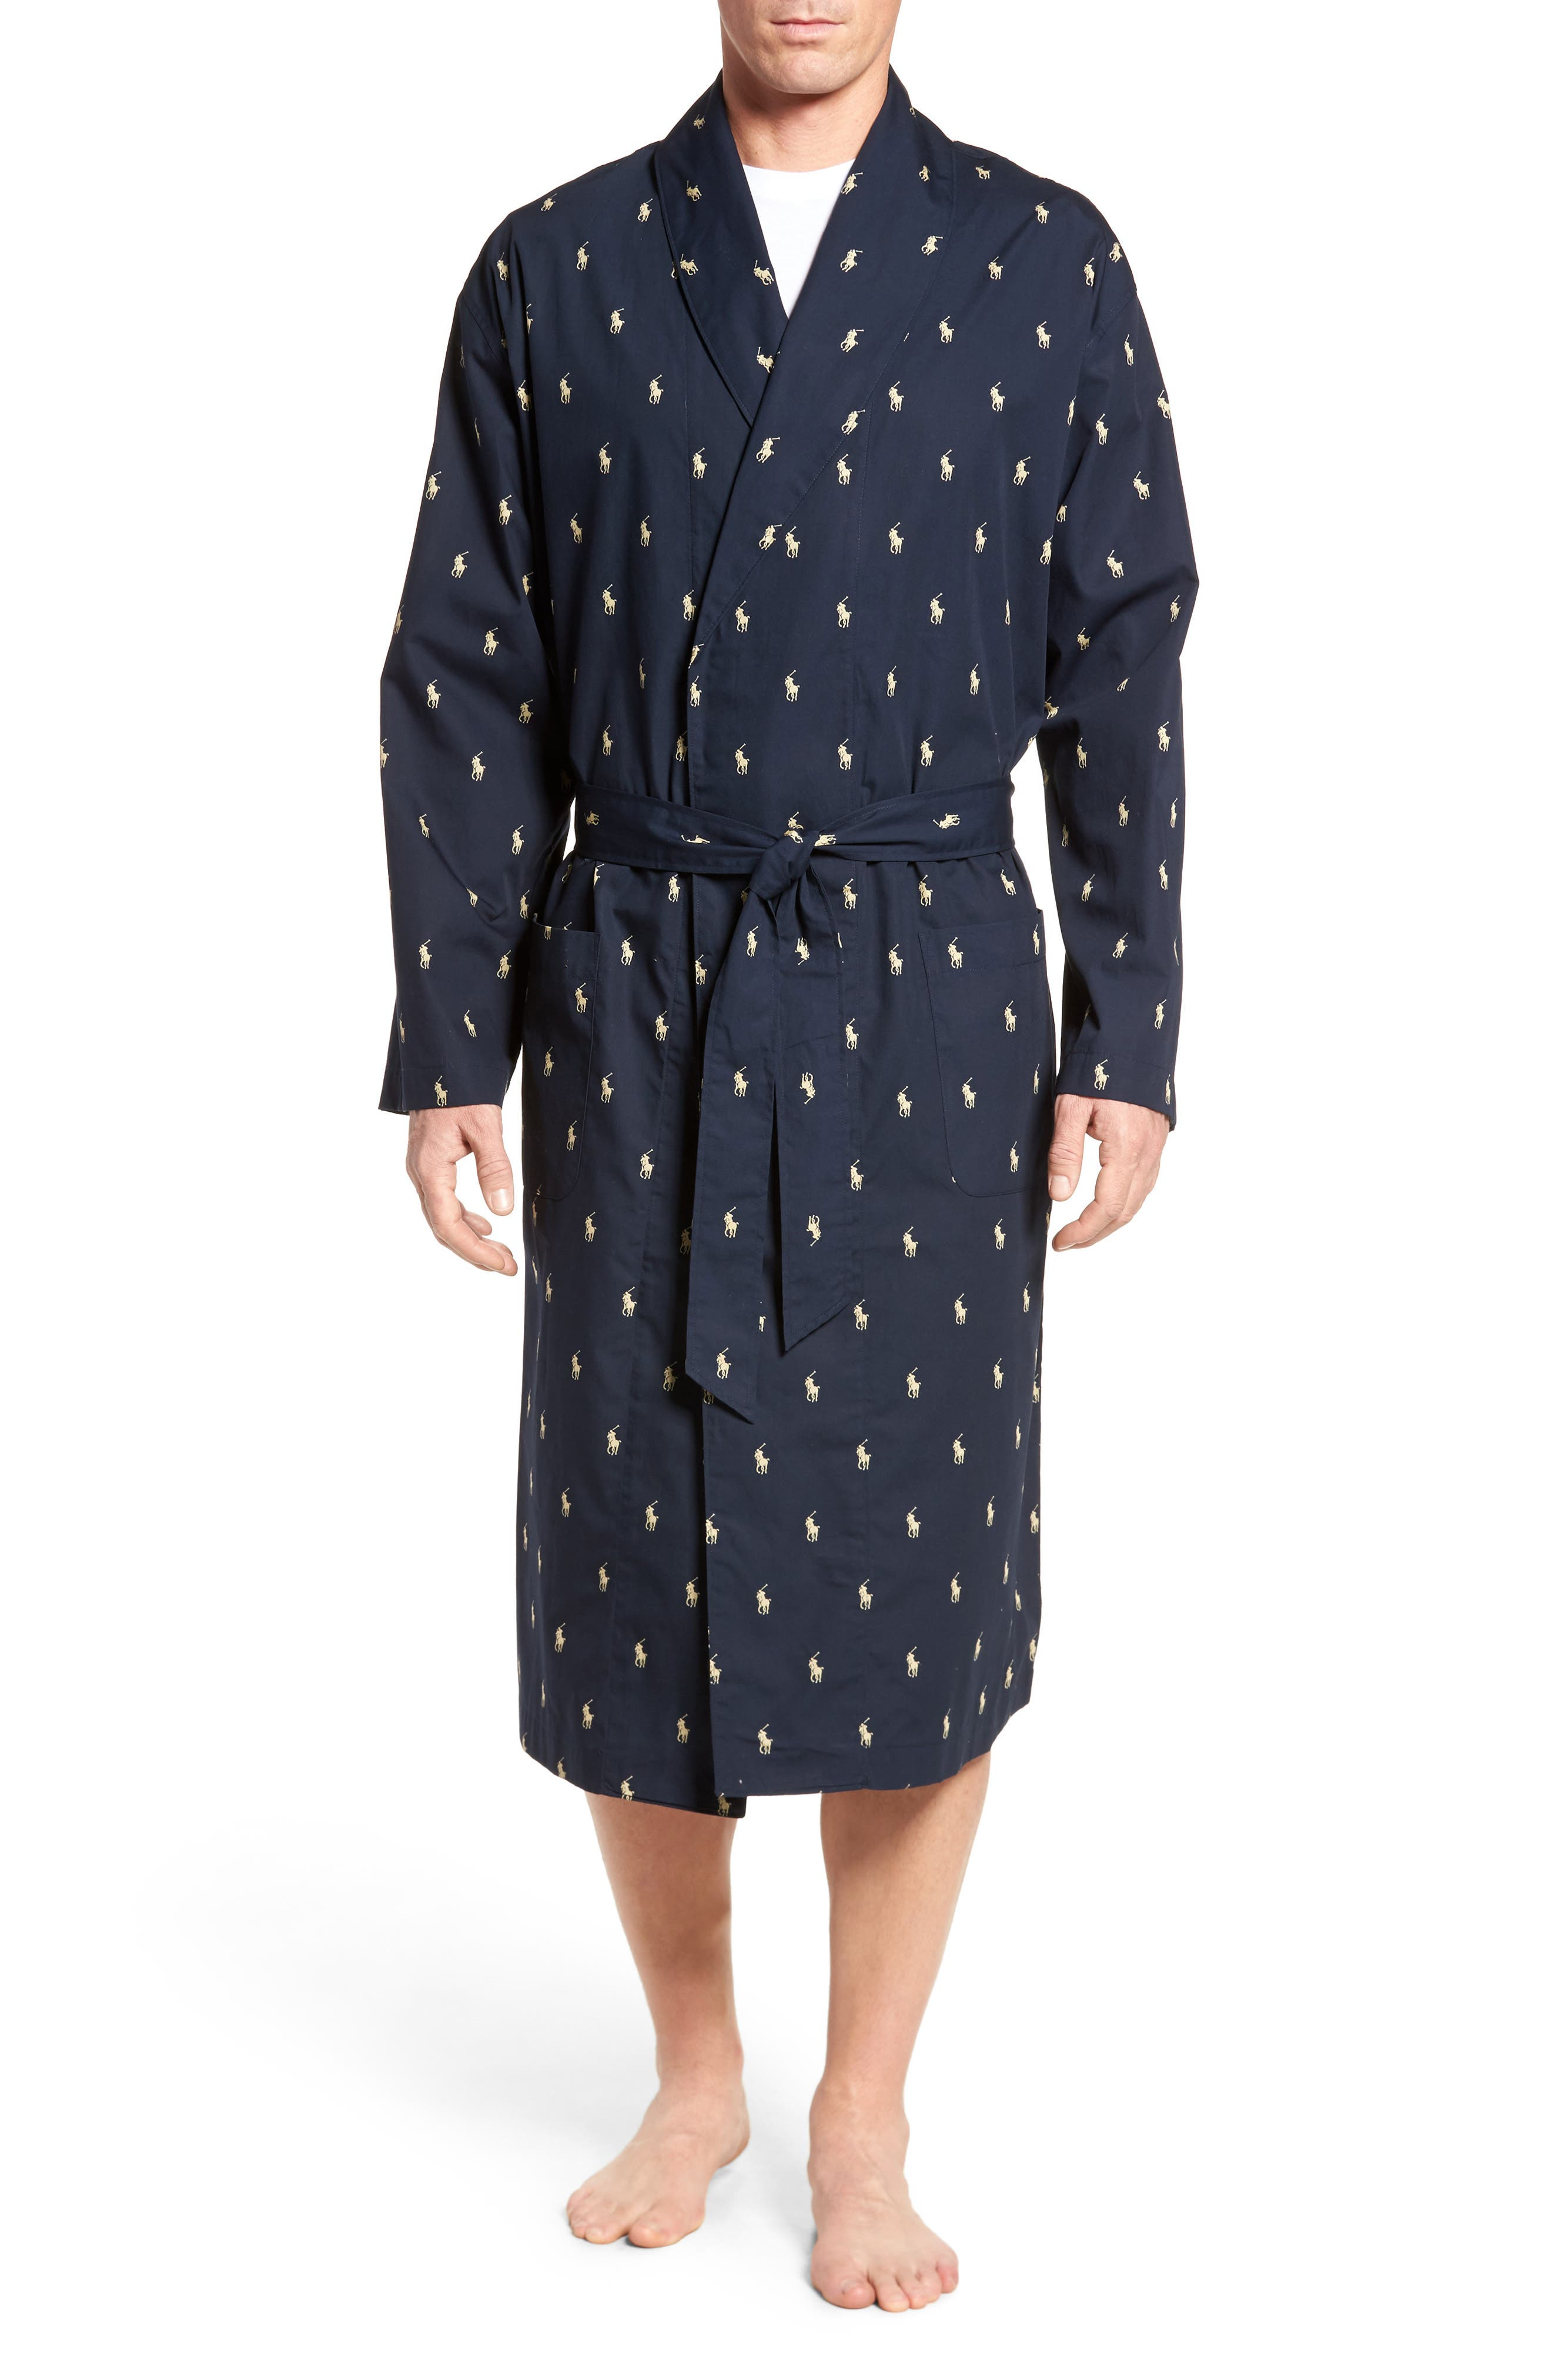 POLO RALPH LAUREN, 'Polo Player' Cotton Robe, Main thumbnail 1, color, 410